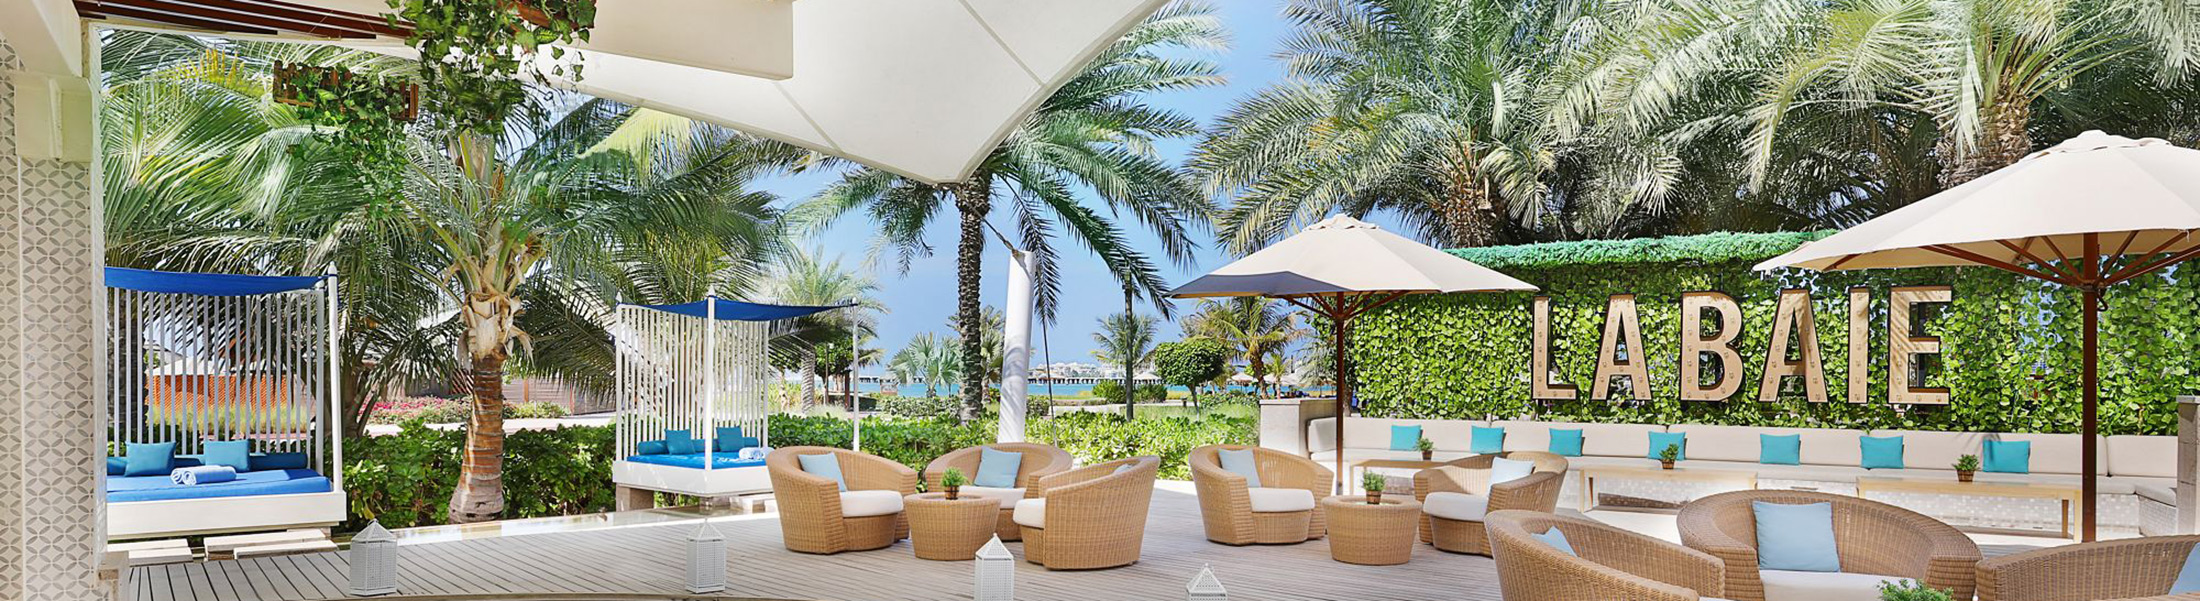 Poolside dining at La Baie at Ritz-Carlton Dubai